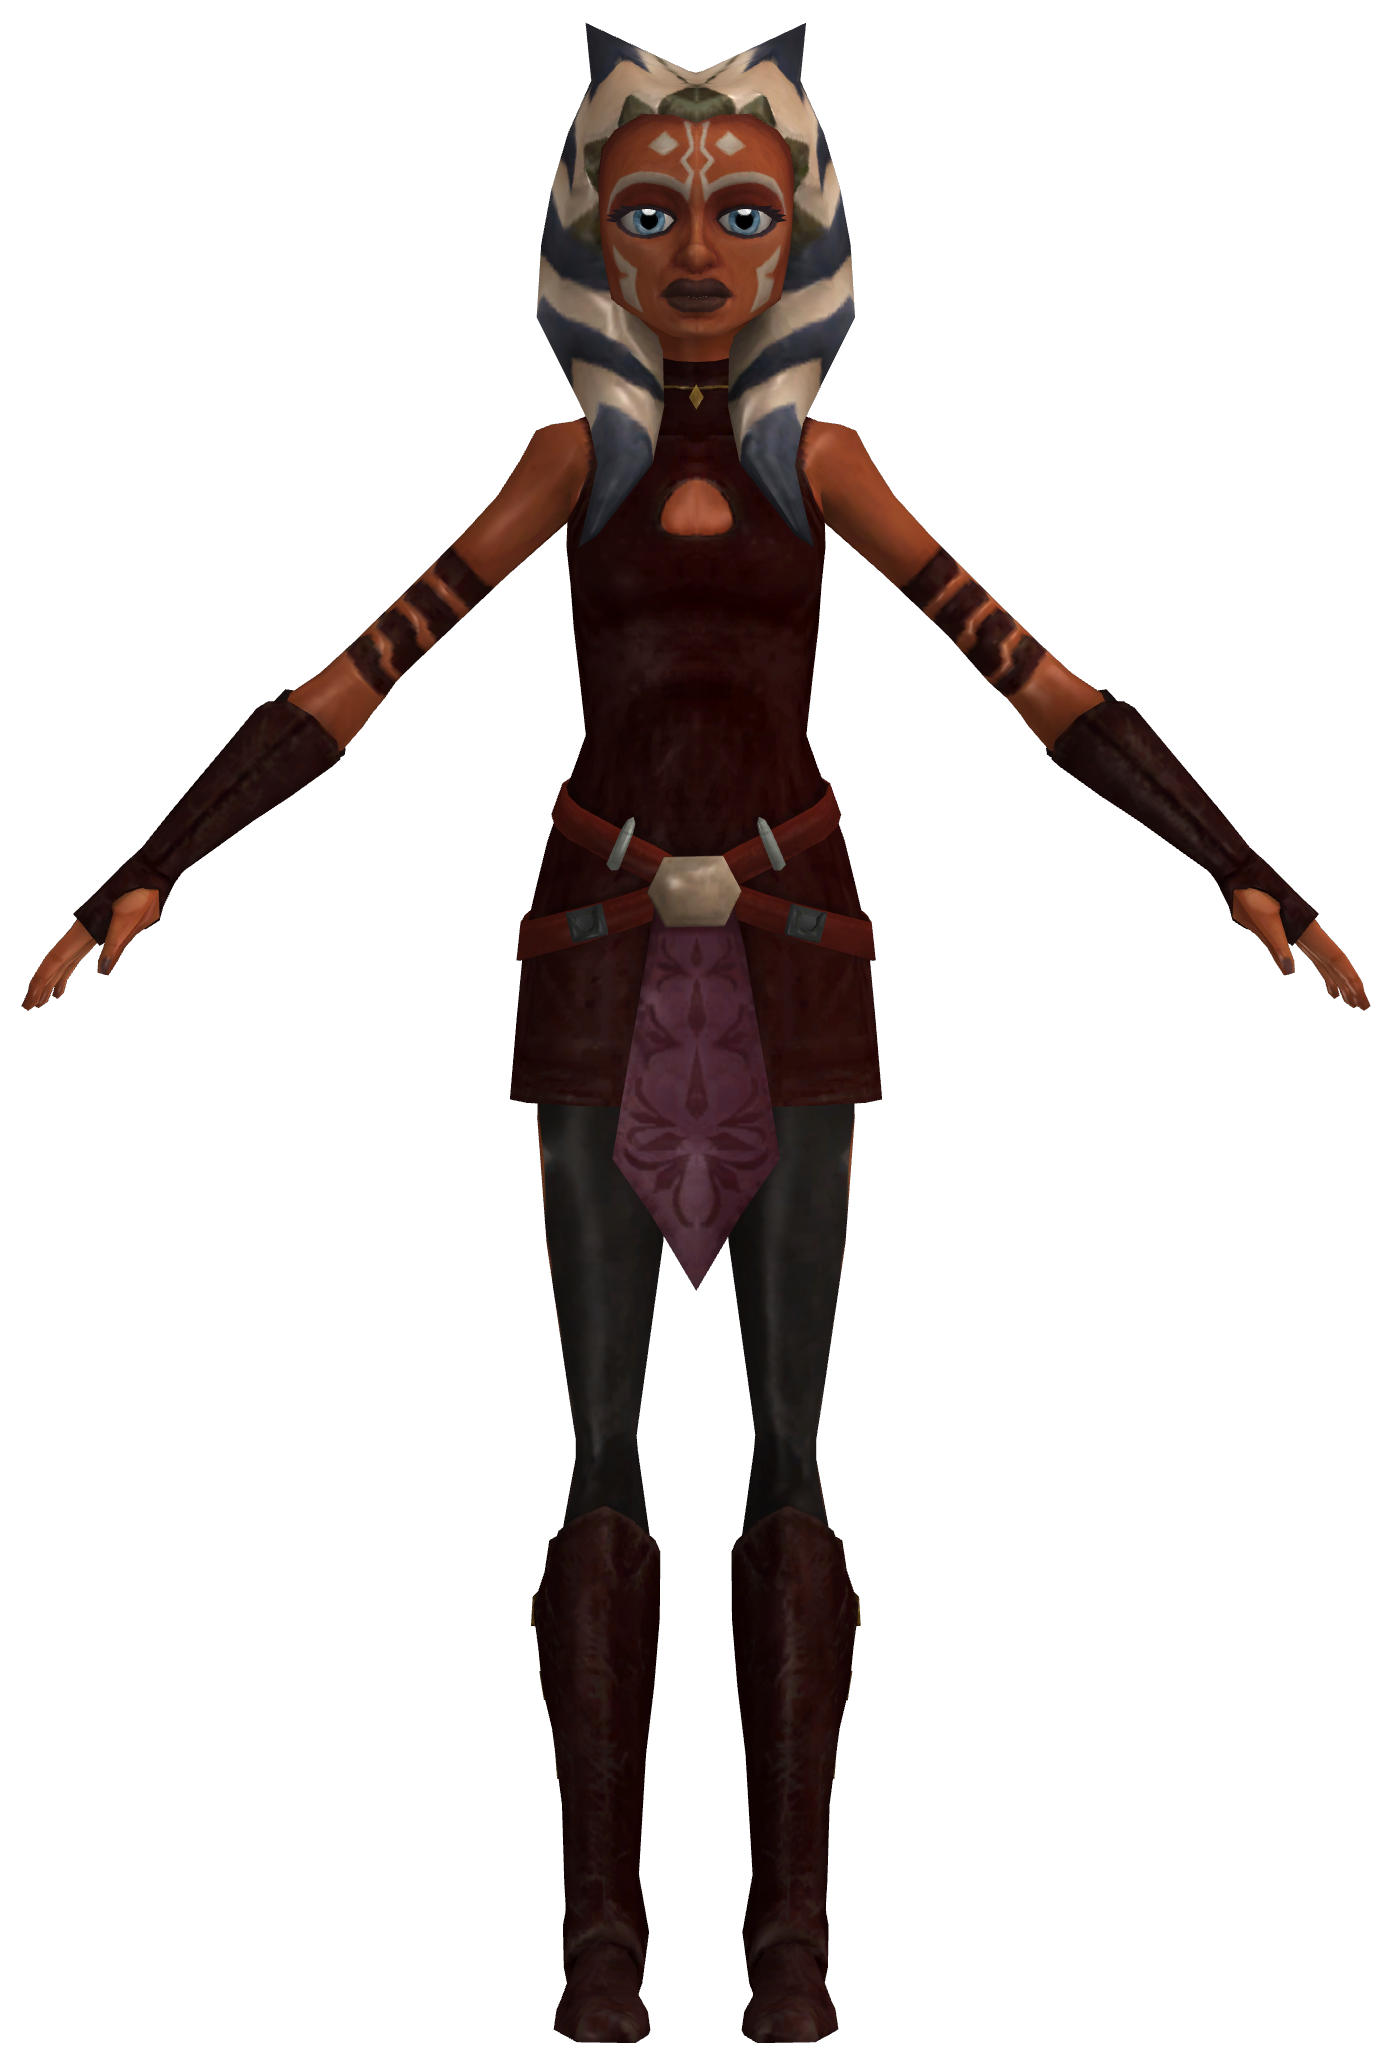 SW Clone Wars Adventures - Ahsoka Tano (S3 Outfit) by ...